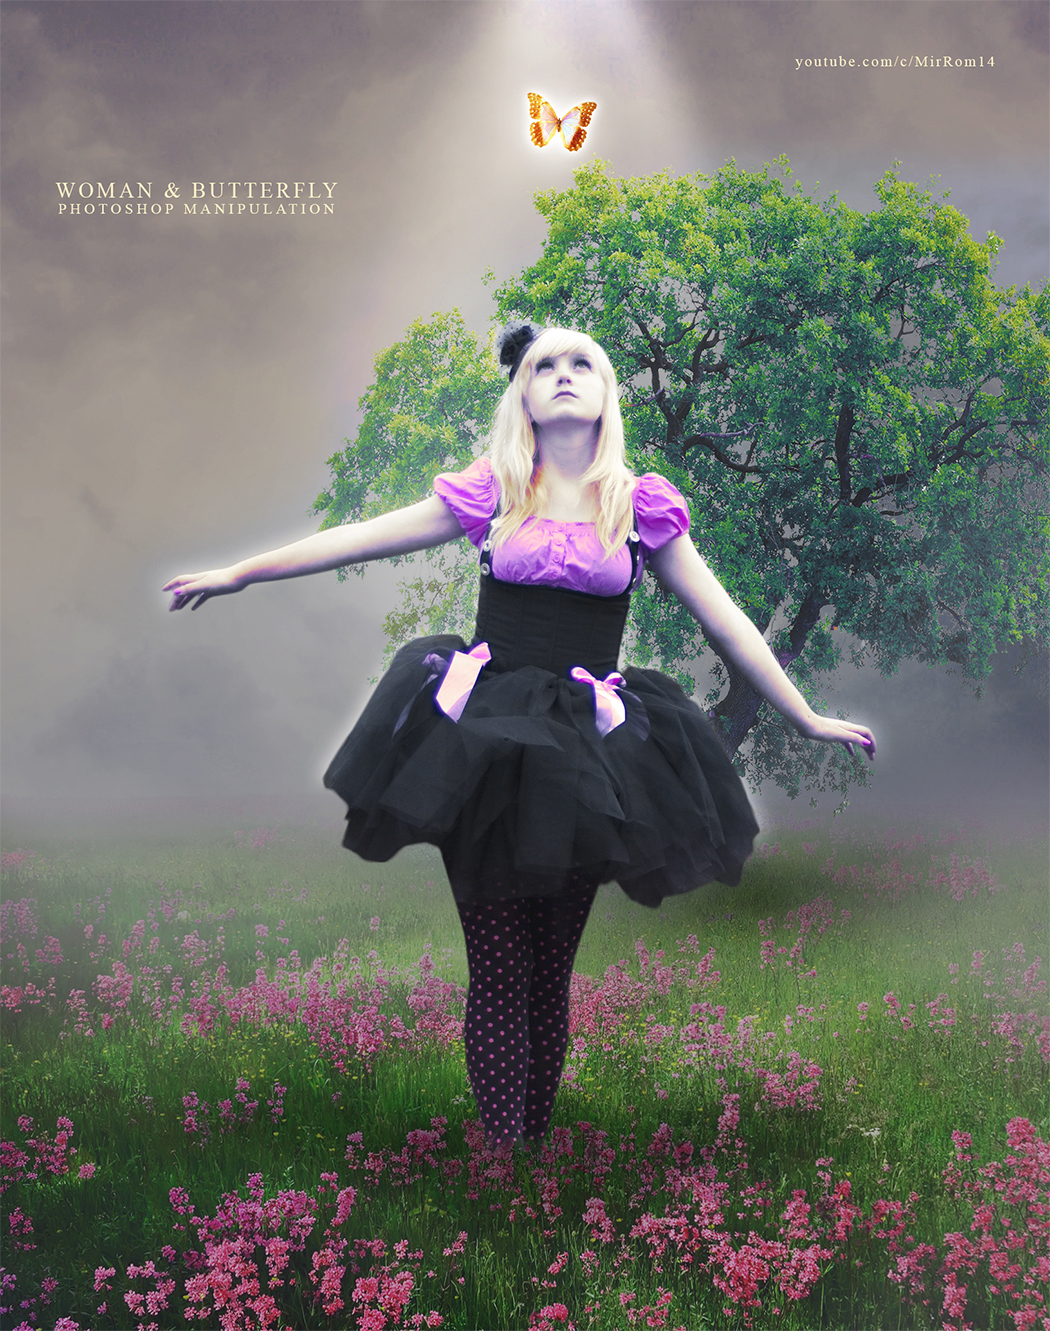 Photoshop Photo Manipulation Tutorial - Woman and Butterfly